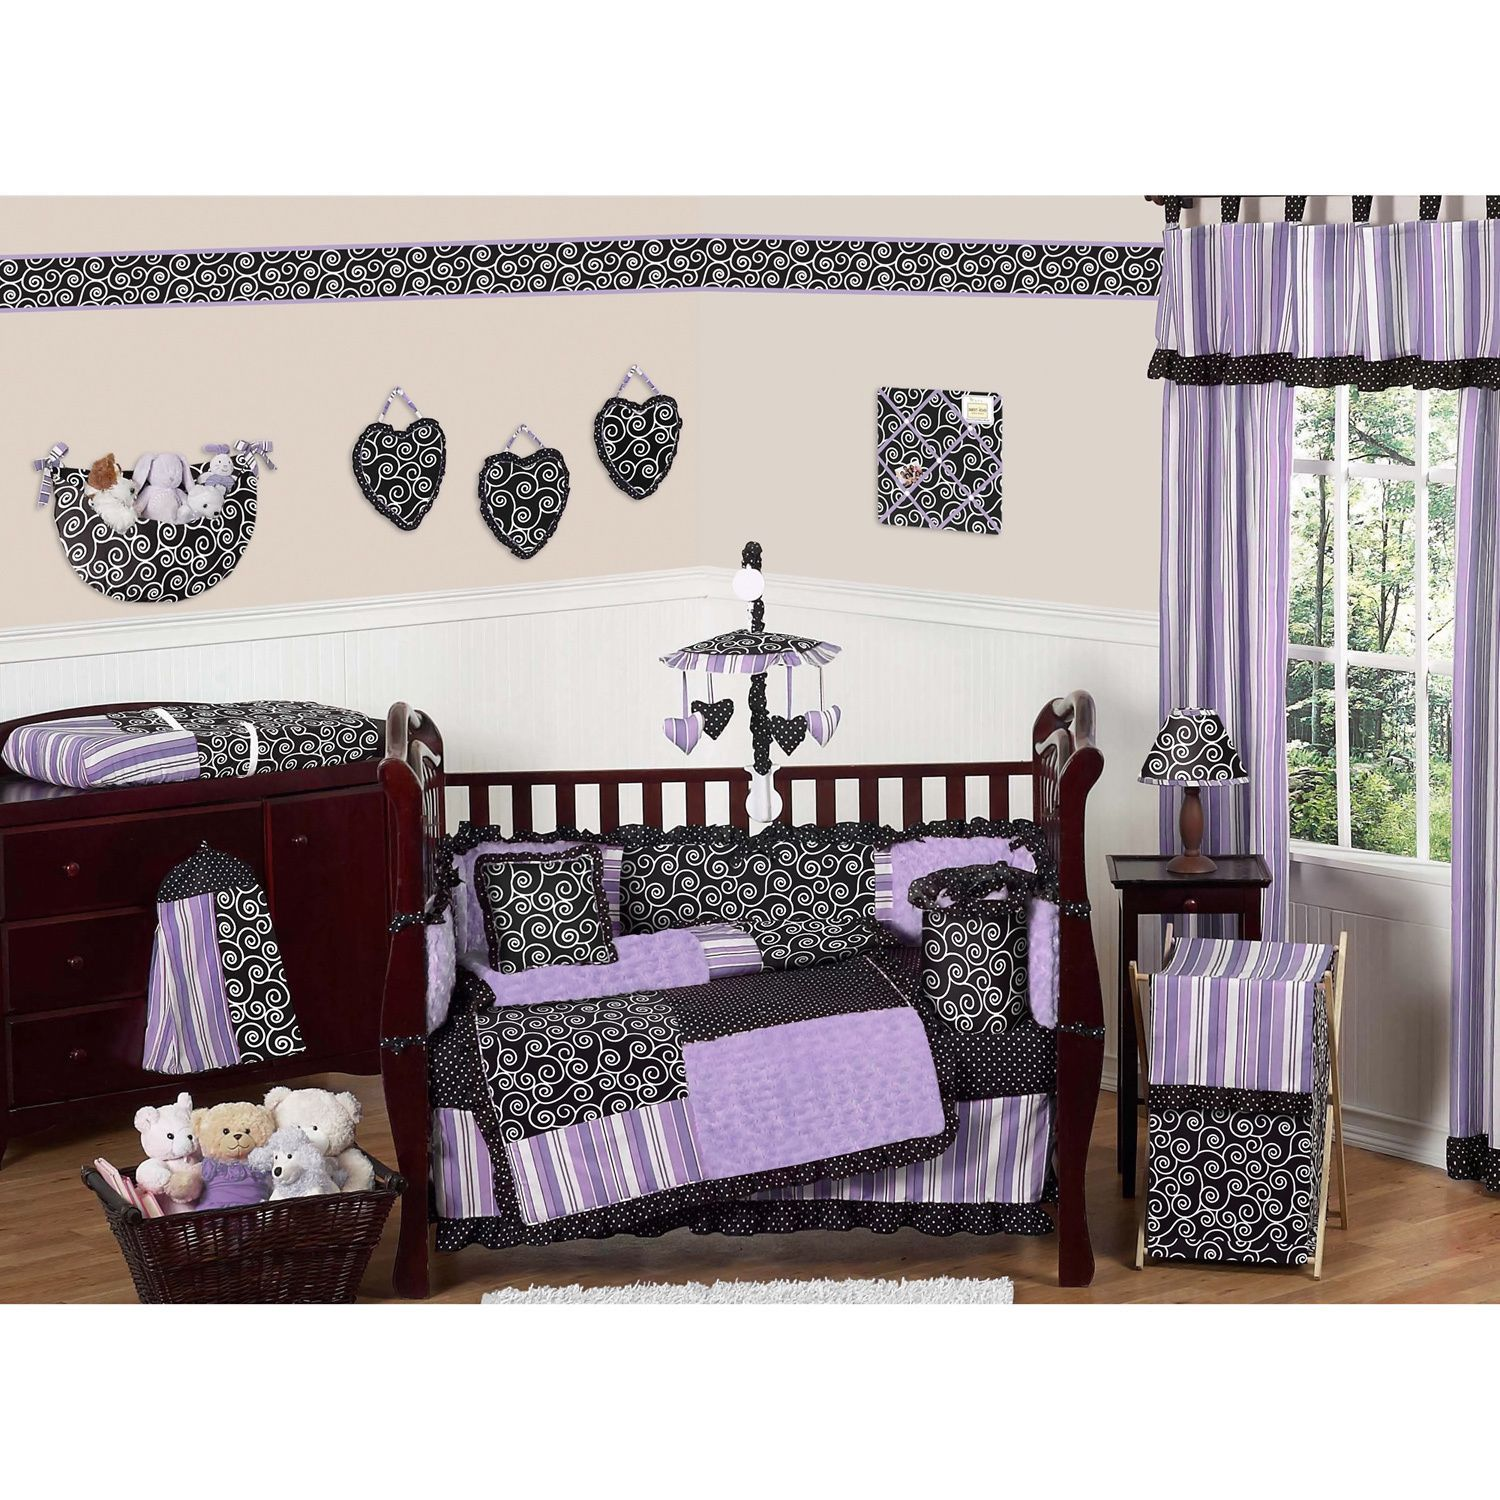 crib overstock animal bedding product jungle piece sweet today designs jojo free bumperless set efdc cribs time shipping baby